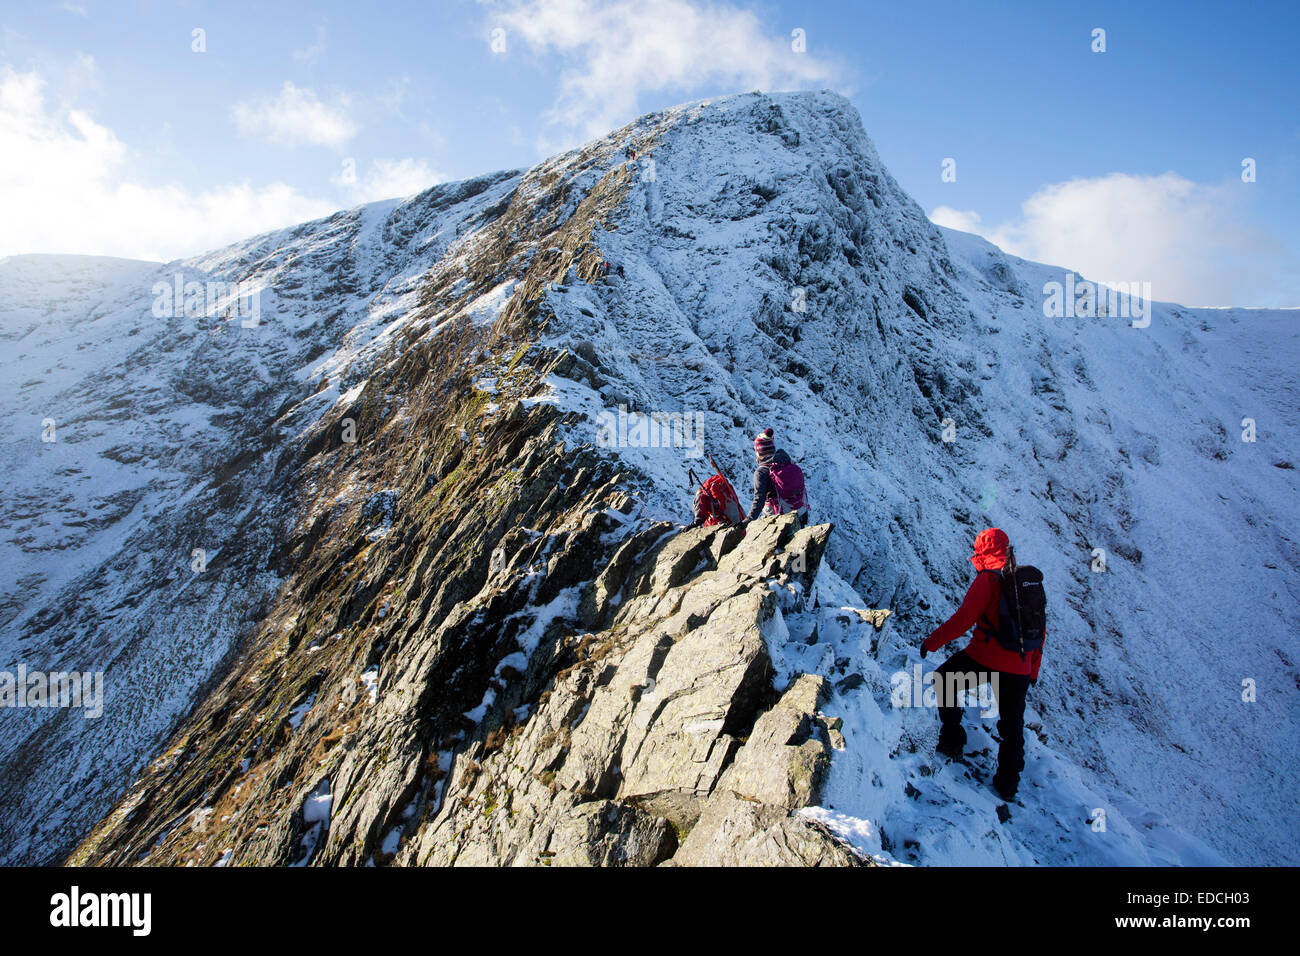 Winter scrambling on Helvellyn and Blencathra in the Lake District National Park, Cumbria, UK - Stock Image